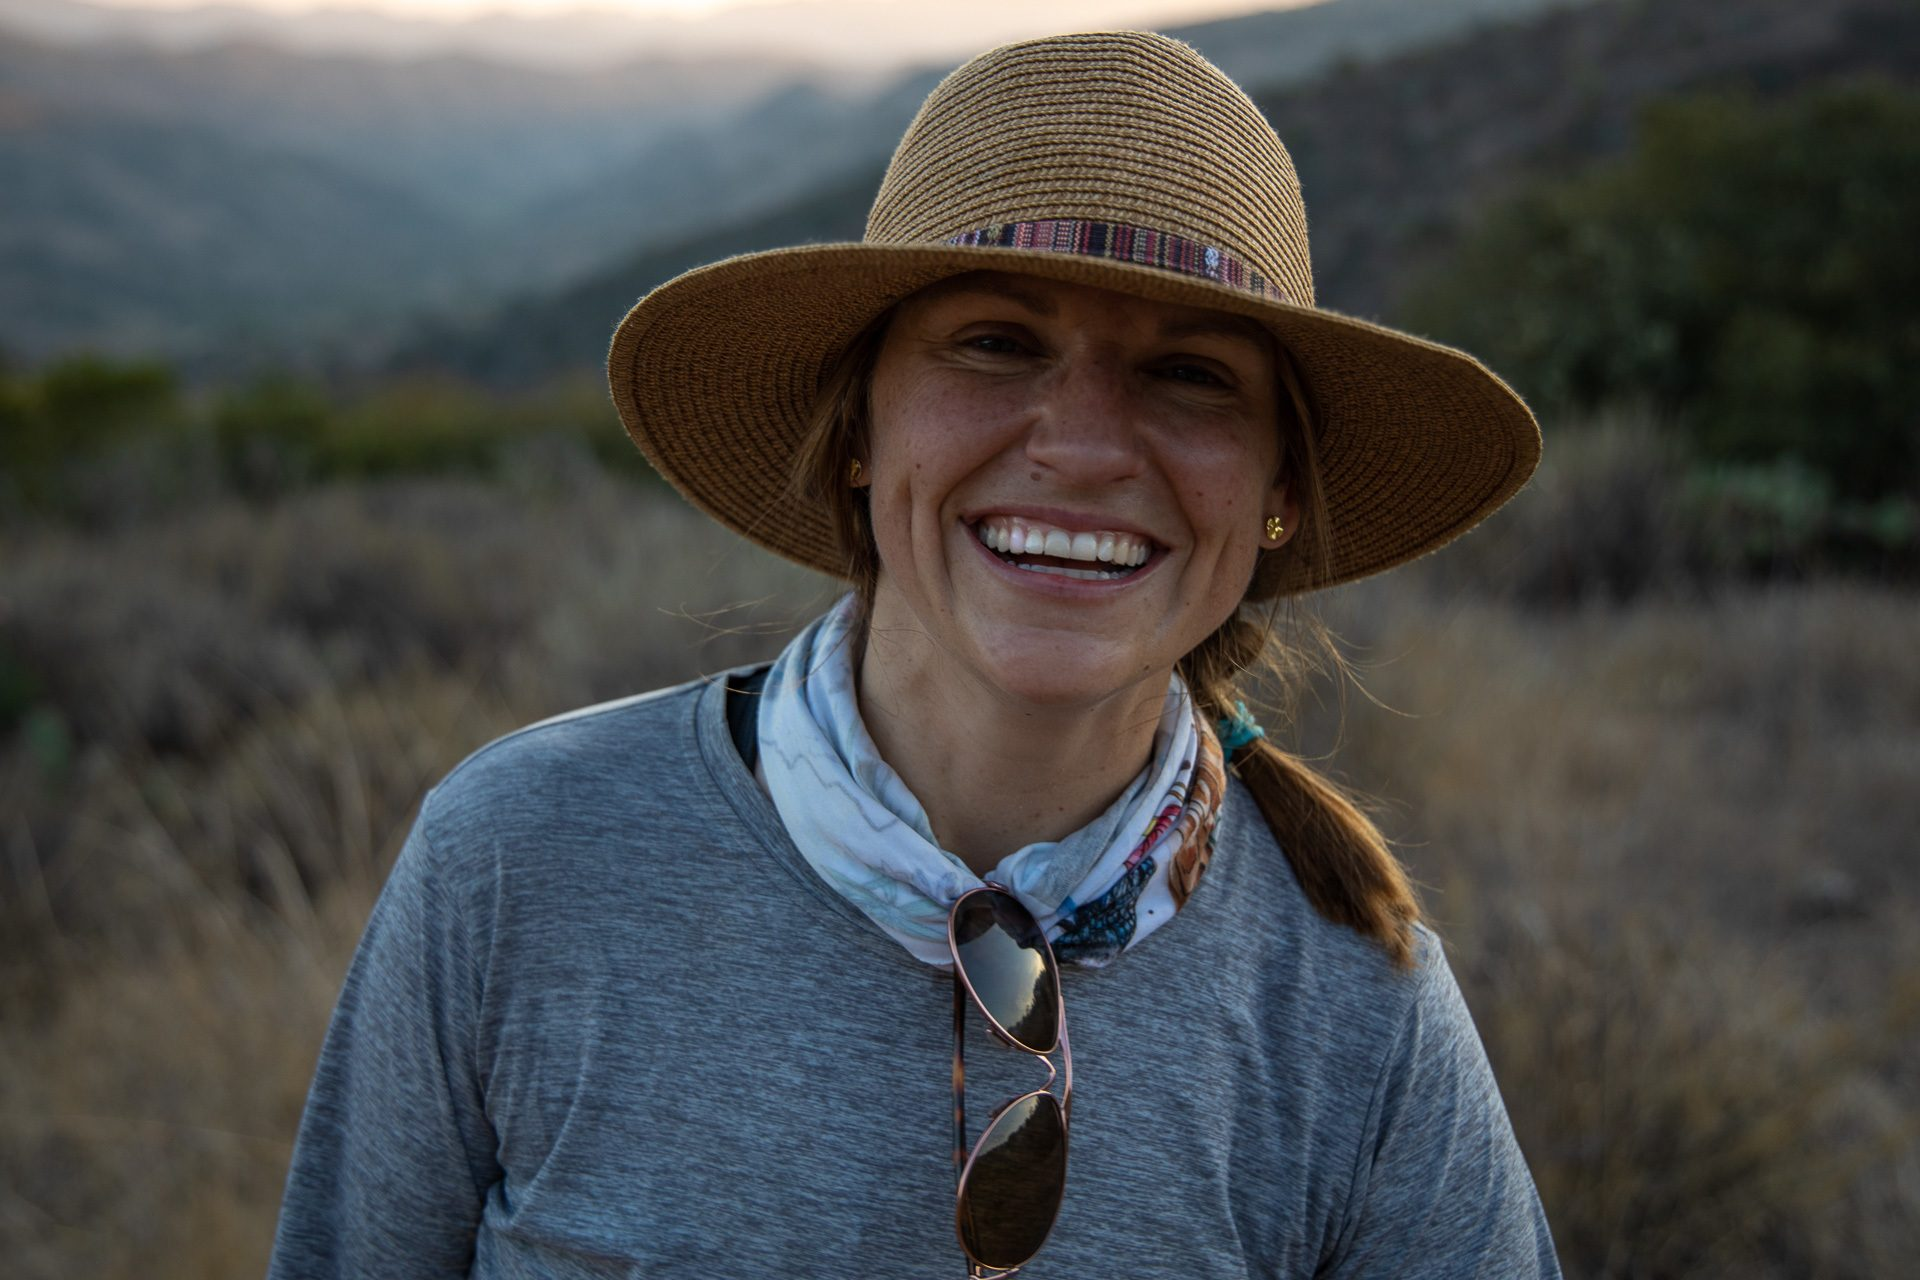 Kristen hiking / Check out the best deals on our favorite outdoor gear and clothing and save big during the REI Labor Day Sale with discounts up to 25% off!